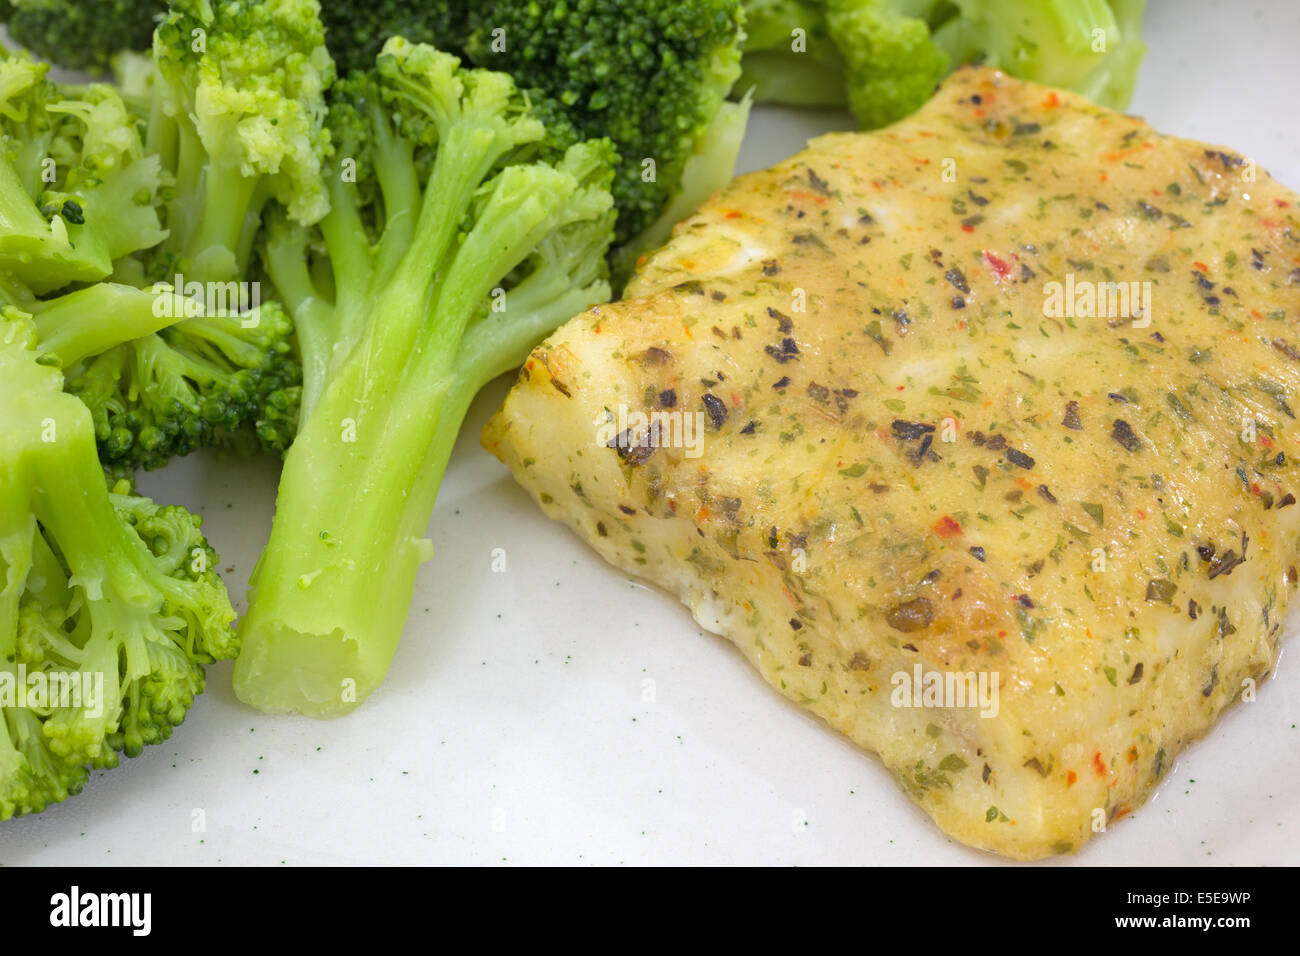 Close view of a fillet of baked pollock on a plate with broccoli. - Stock Image